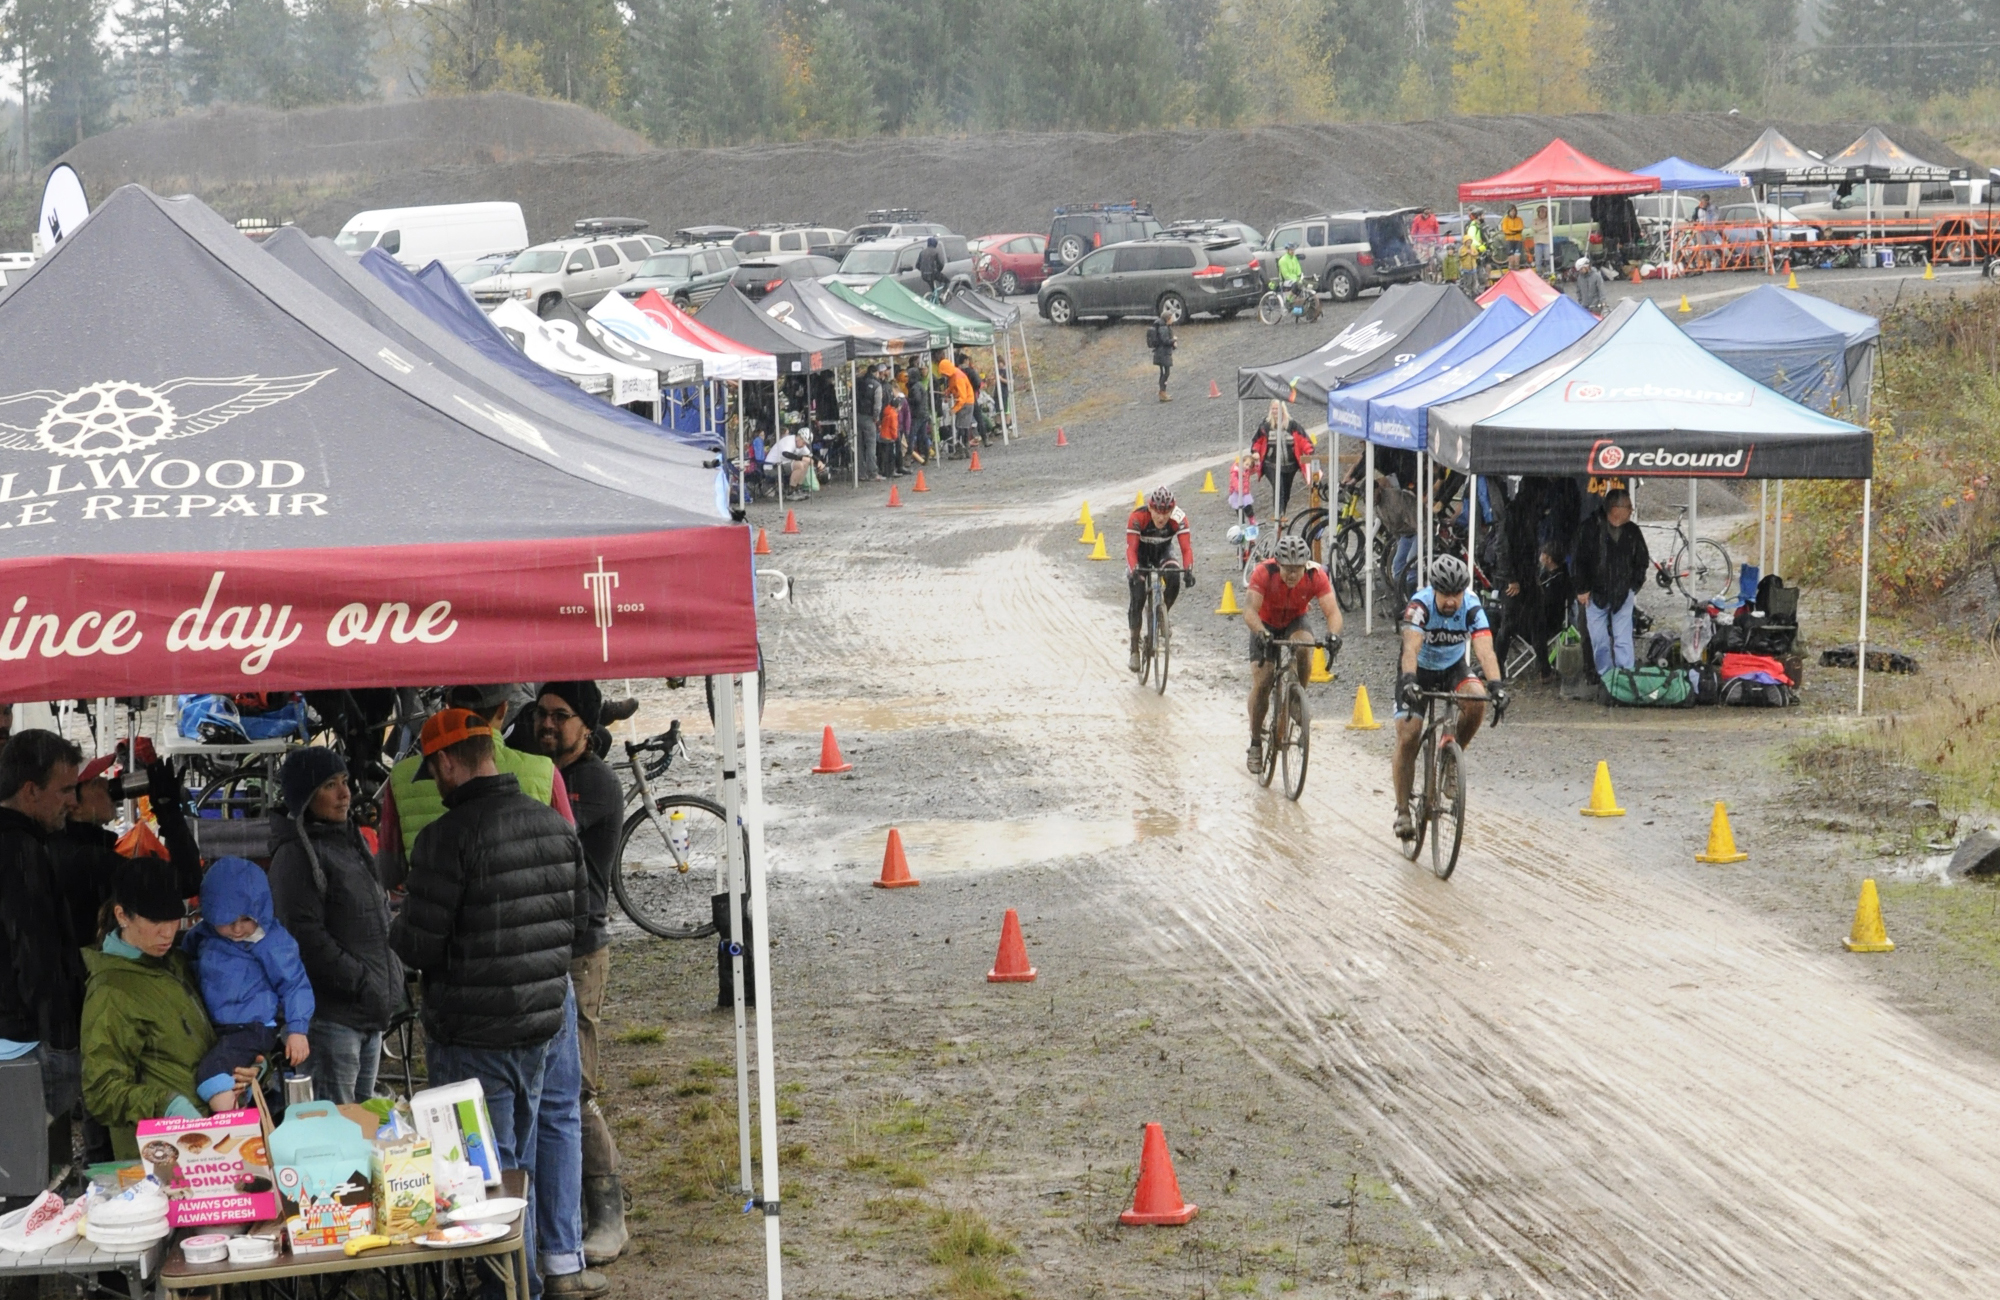 SellwoodCycle_CCBP_05